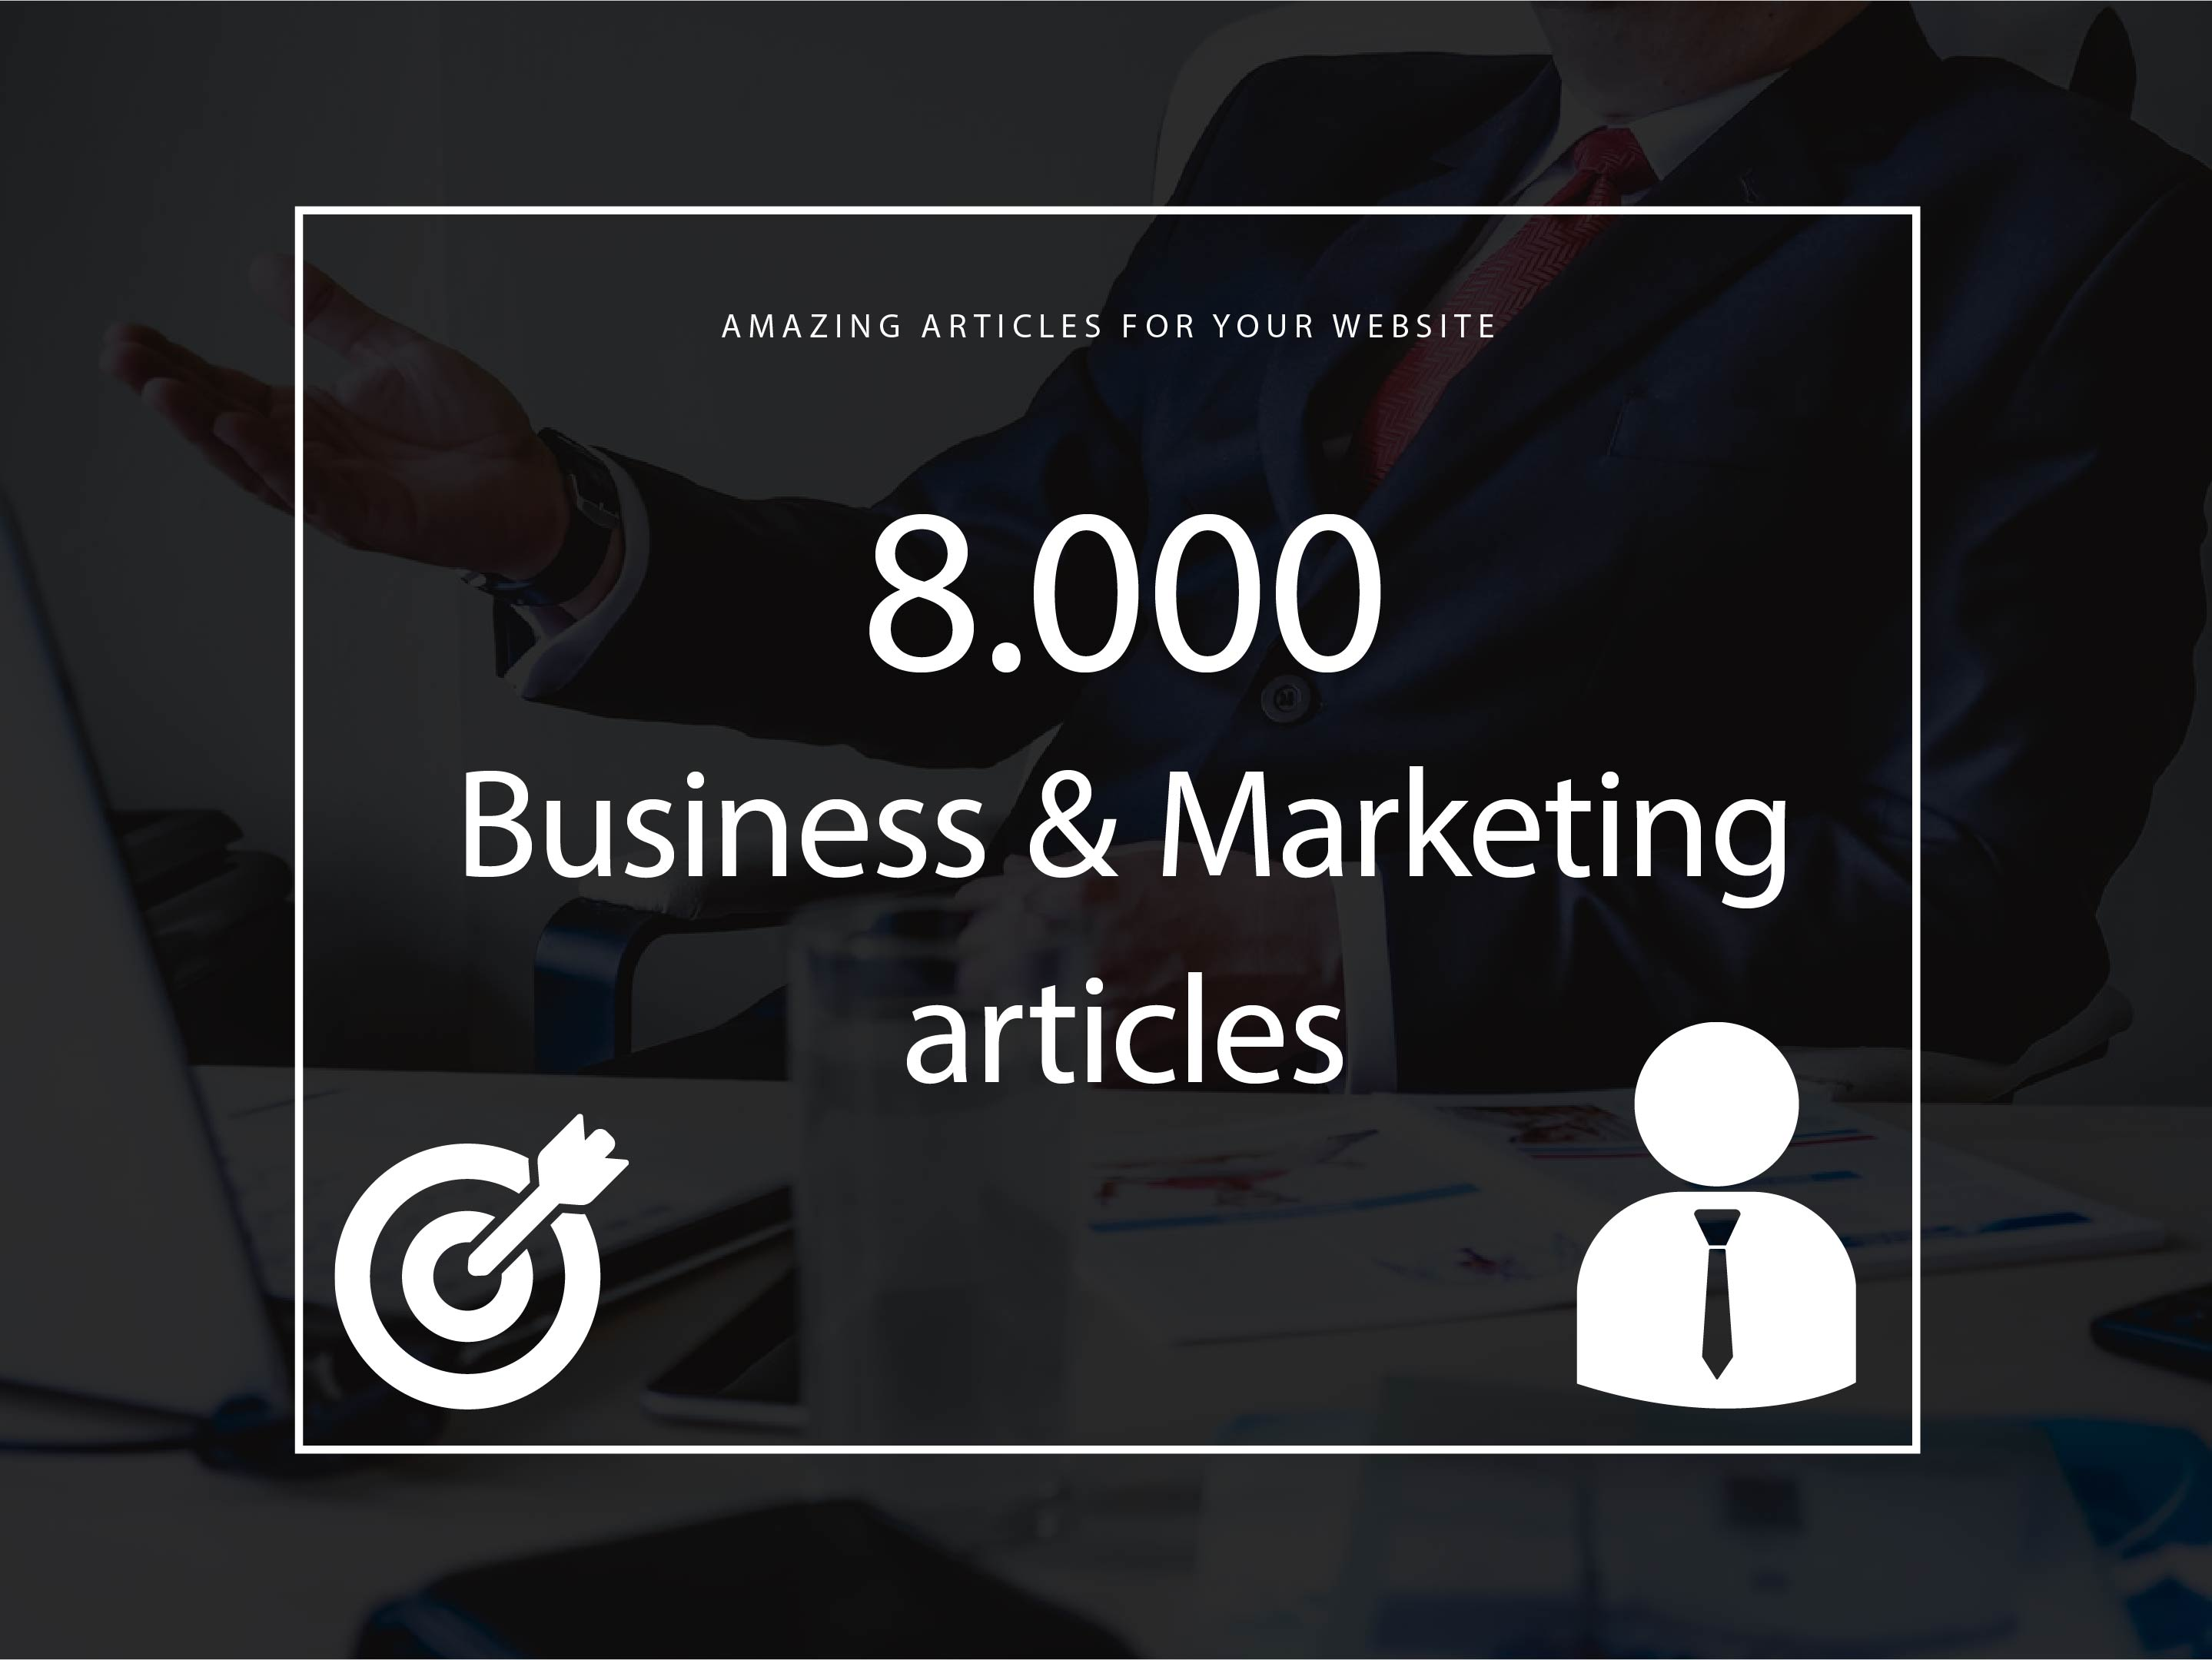 8000 Business & Marketing articles